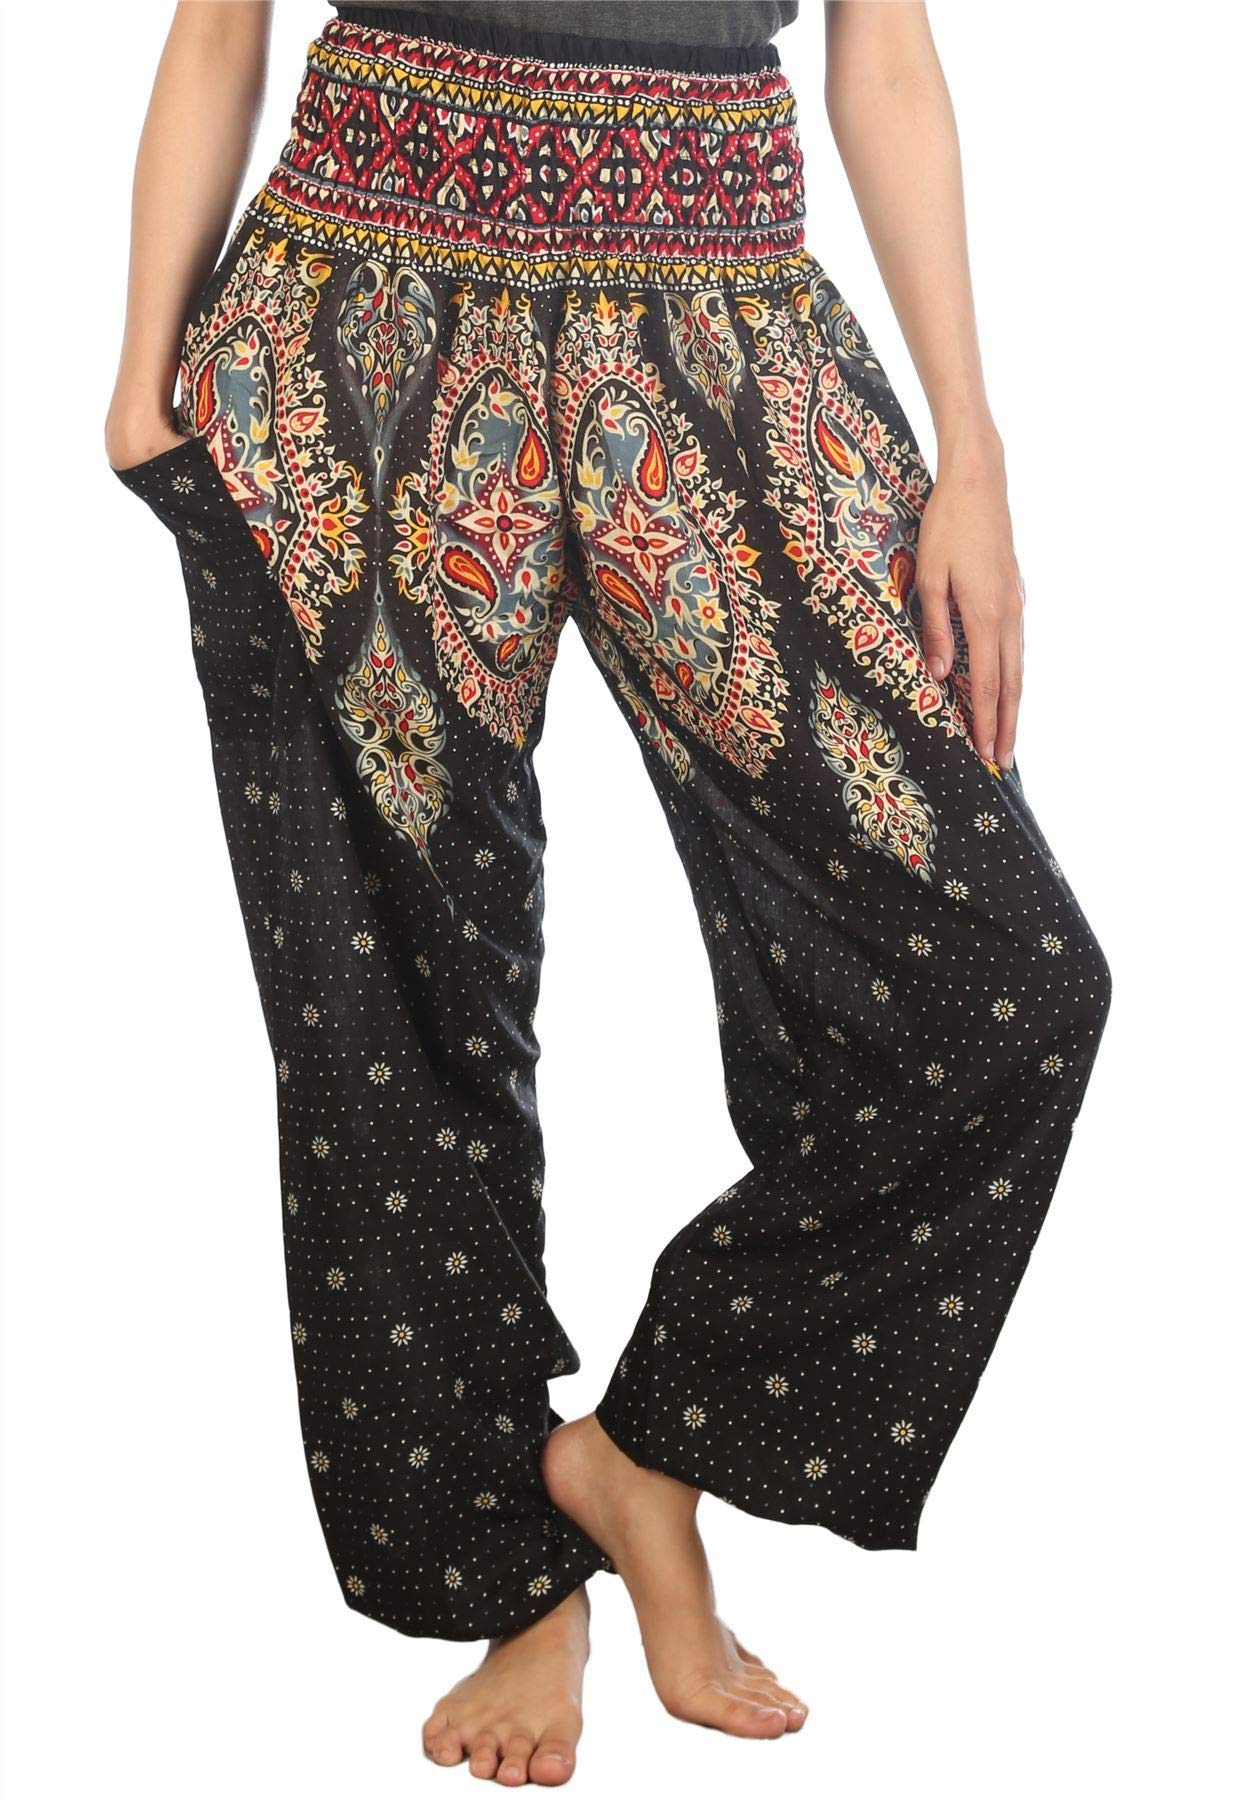 Lofbaz Women's Floral Smocked Waist Harem Pants Boho Clothing Black 3XL